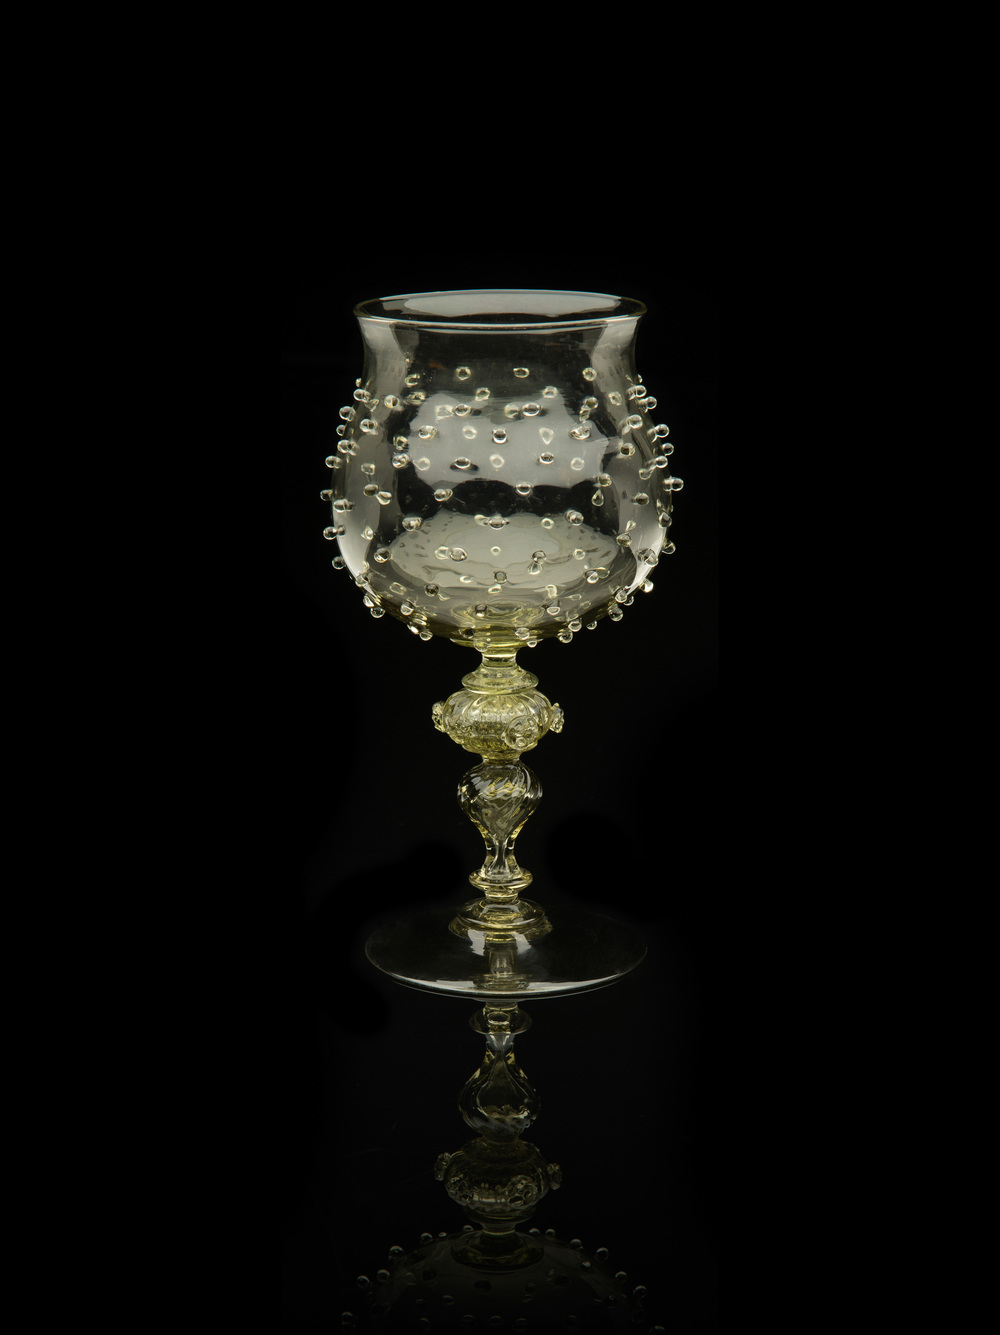 Unknown Venetian,  Goblet with Prunts  (glass, 7 3/8 x 3 1/8 x 3 1/8 inches), VV.582